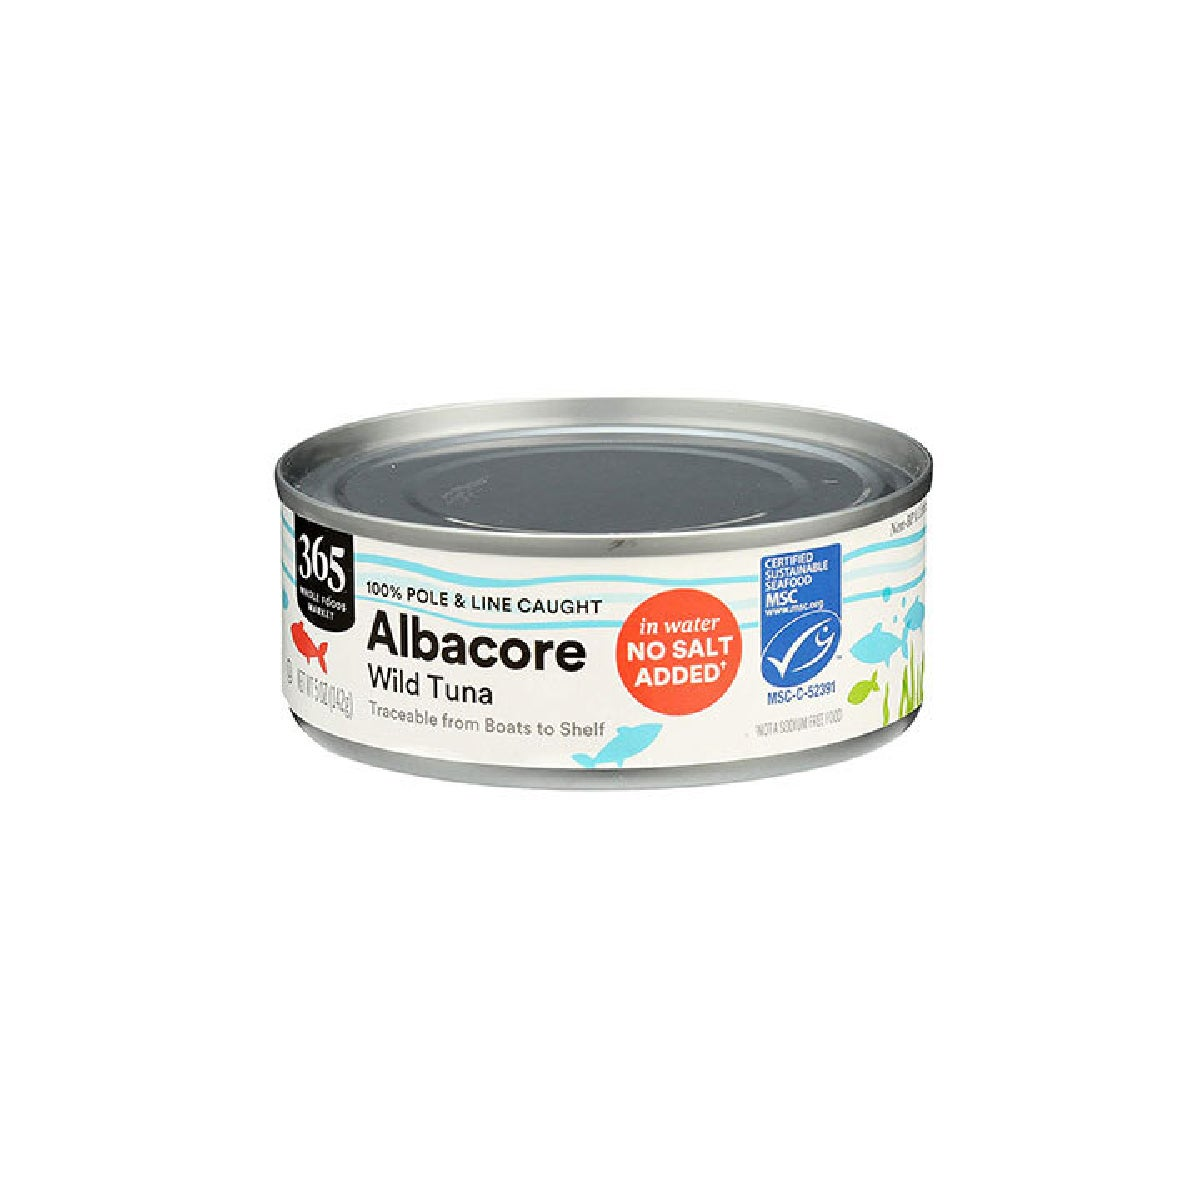 Best Canned Tuna Option_365 by Whole Foods Market Albacore in Water, No Salt Added